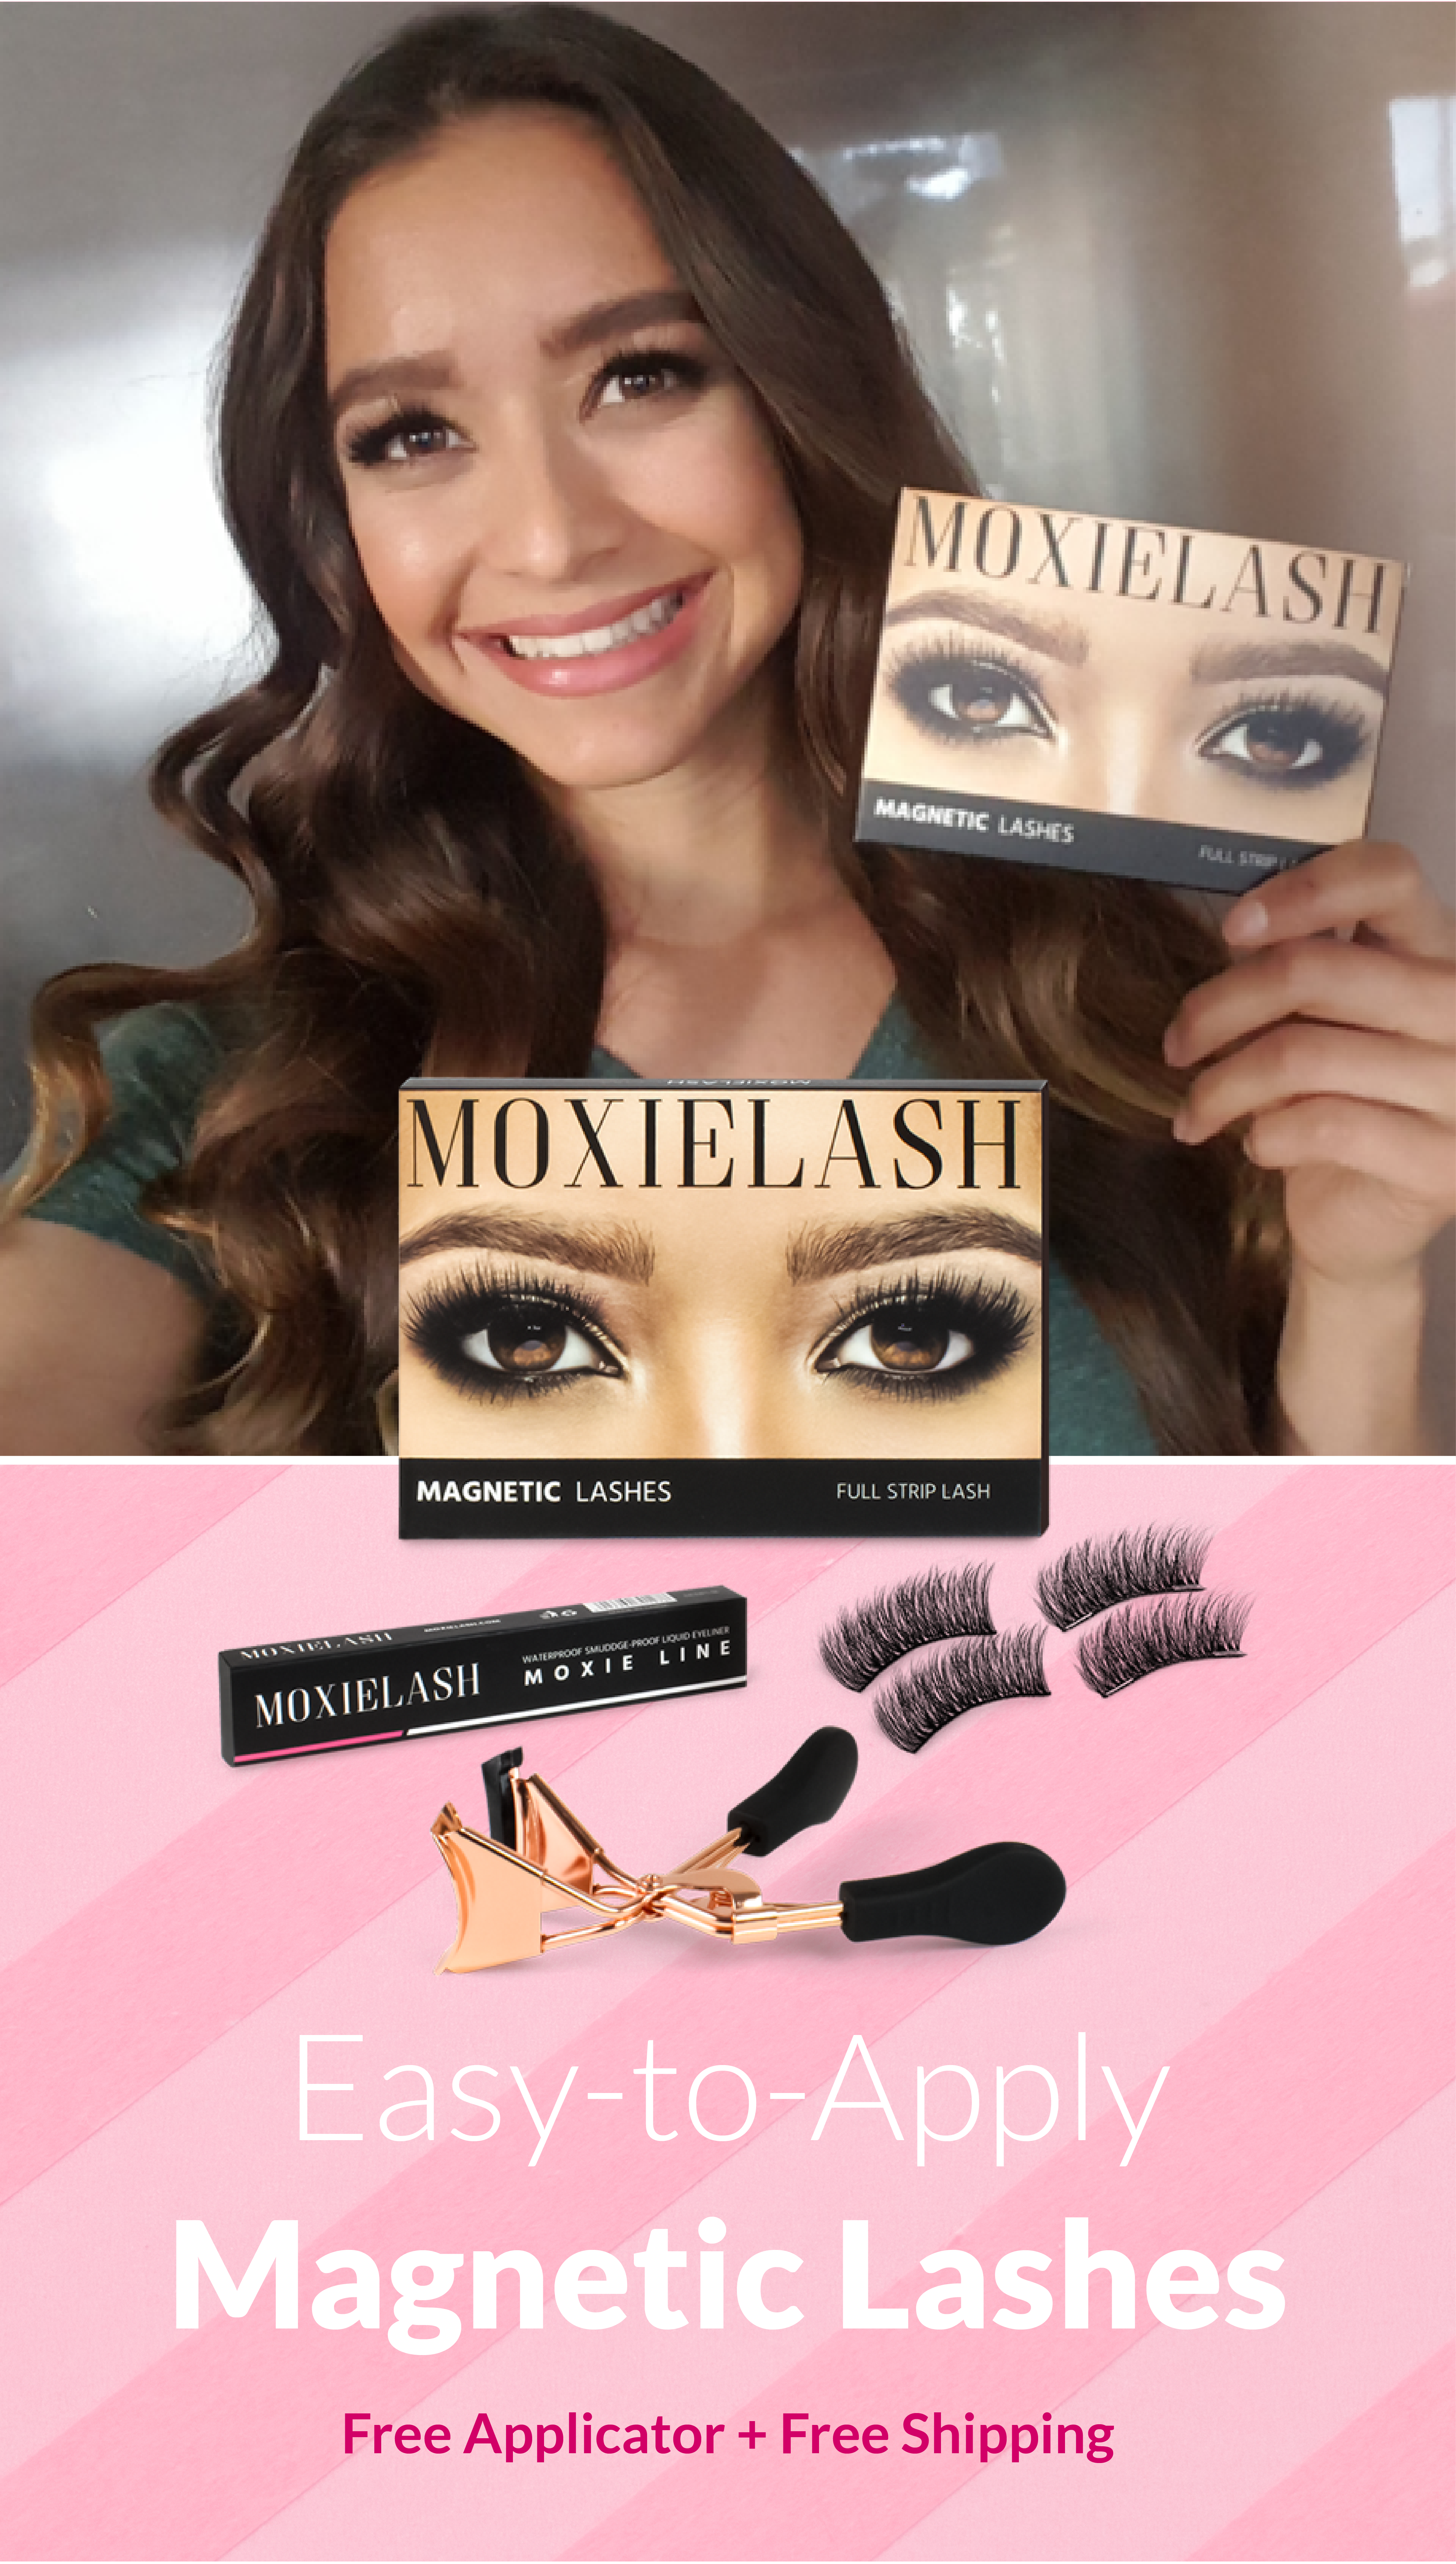 da1729ba915 Easy to Apply Magnetic Lashes from Moxie Lash! Click here to pick up your  free applicator 🙌🏻